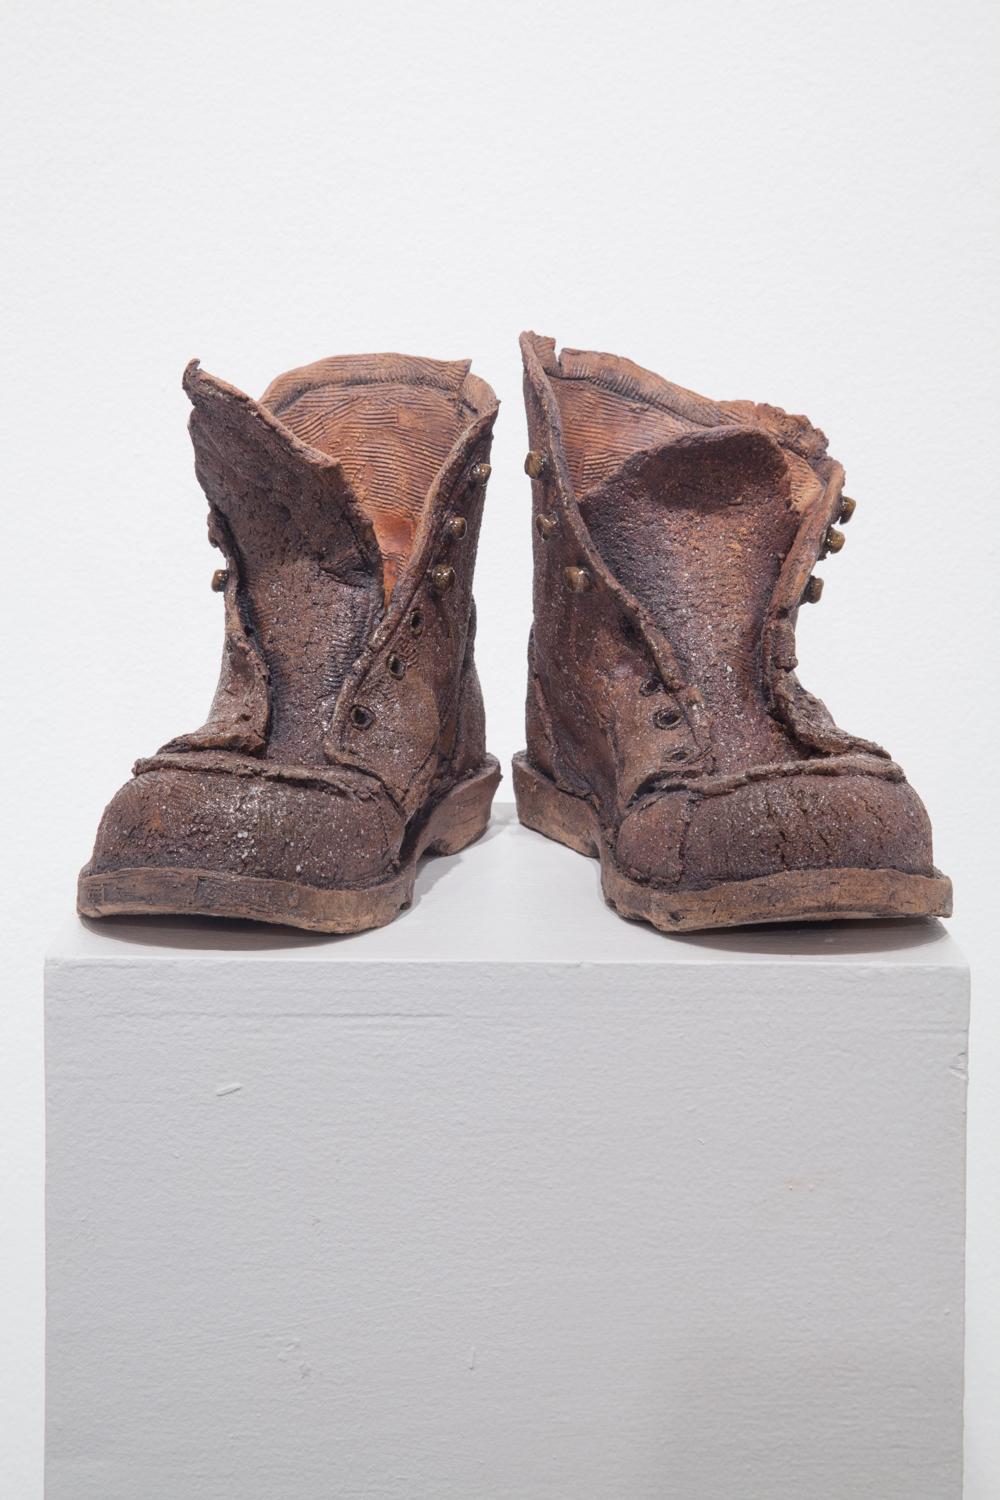 Claire Shurley     Papa's Work Boots     reclaimed stoneware, dirt from Shurley farmland,black stain, iron oxide, glaze, cone 6 oxidation